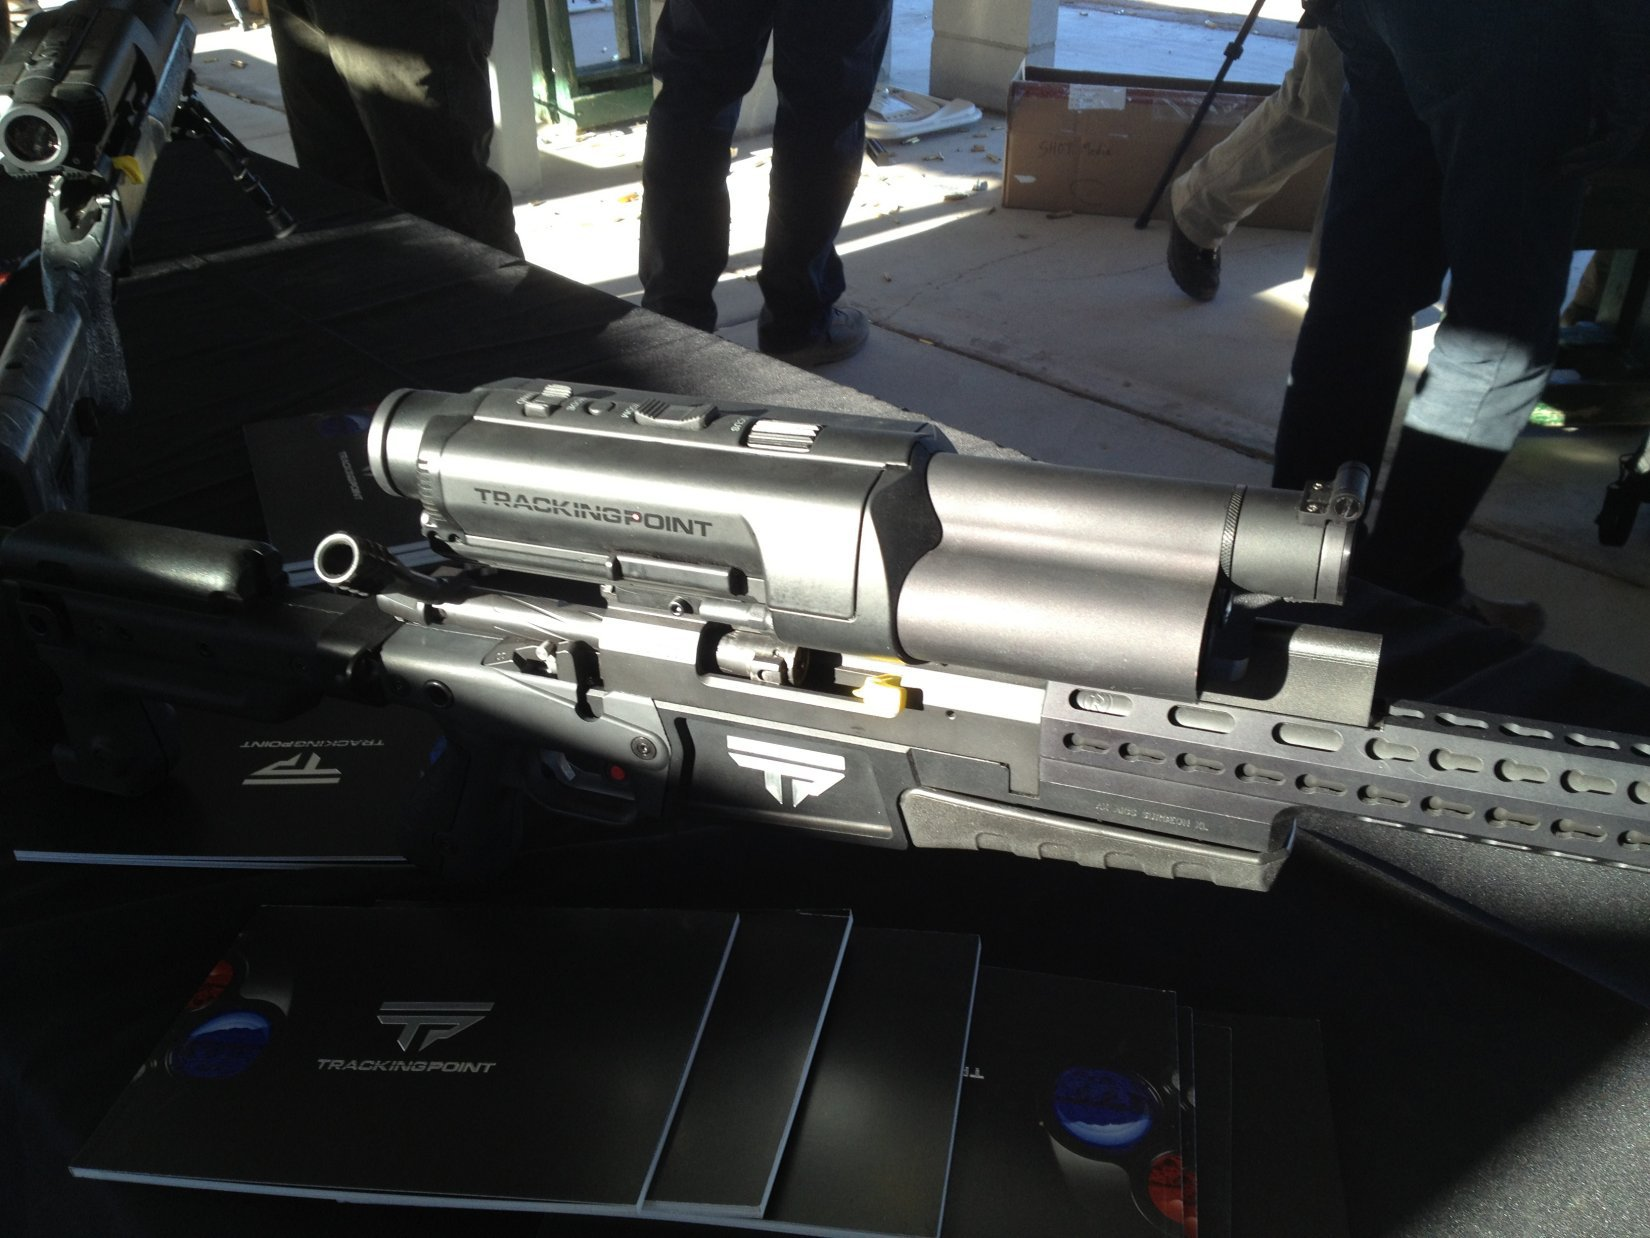 TrackingPoint XactSystem Precision Guided Firearm (PGF) Sniper Rifle Package with Integrated Networked Tracking Scope (Tactical Smart Scope): Heads-Up Display and Guided Trigger for Future Snipers (Video!)